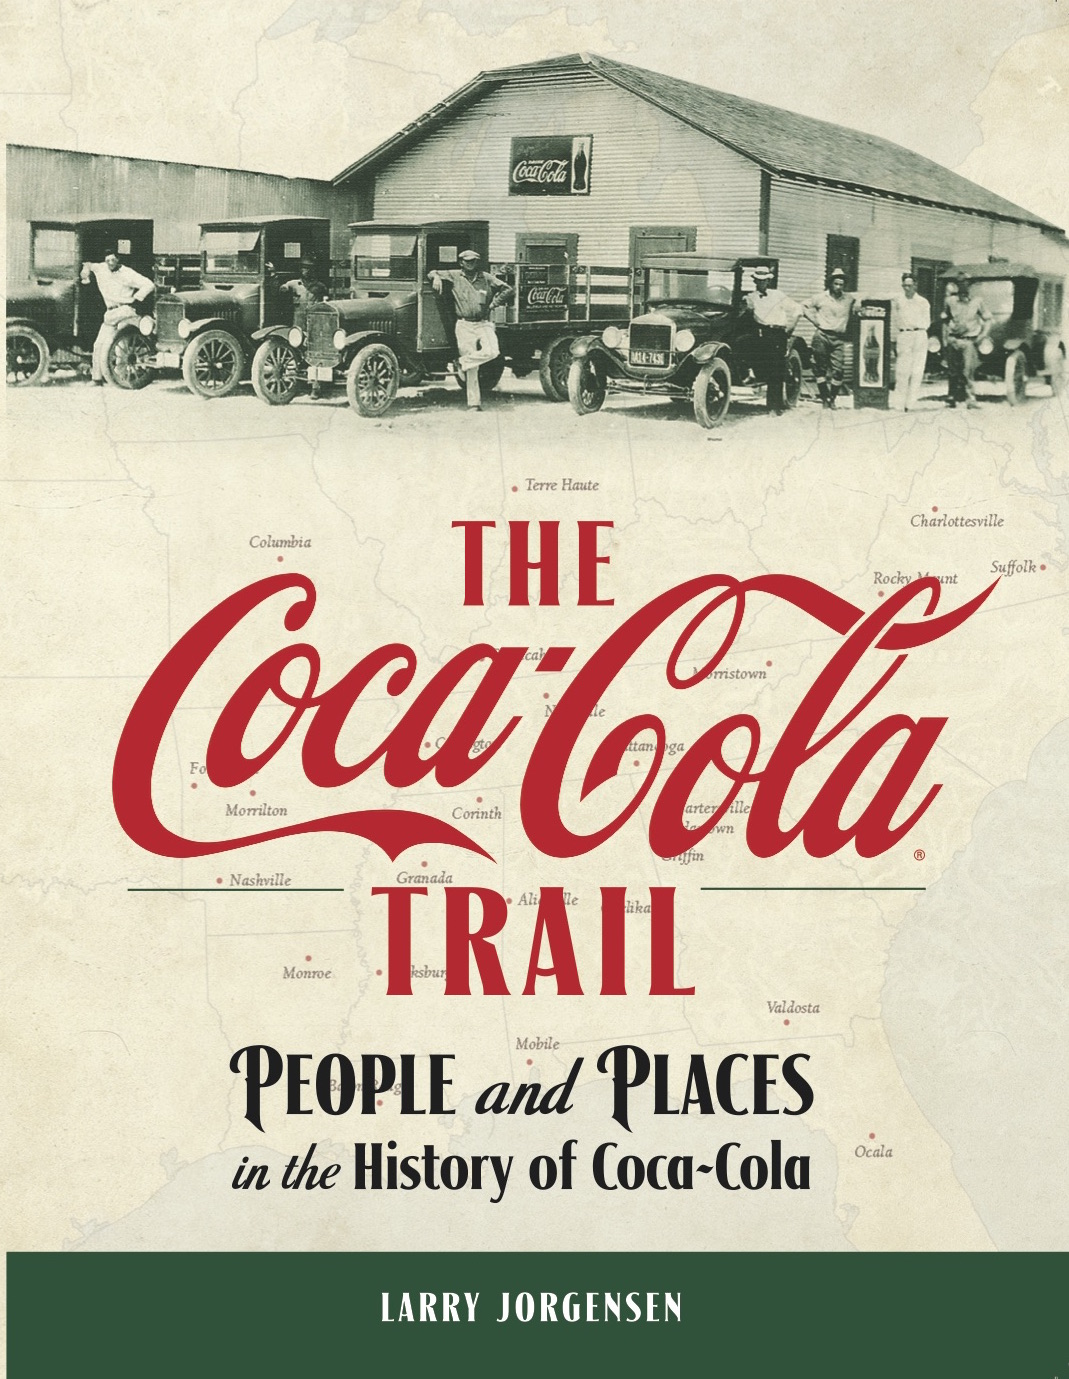 THE COCA-COLA TRAIL